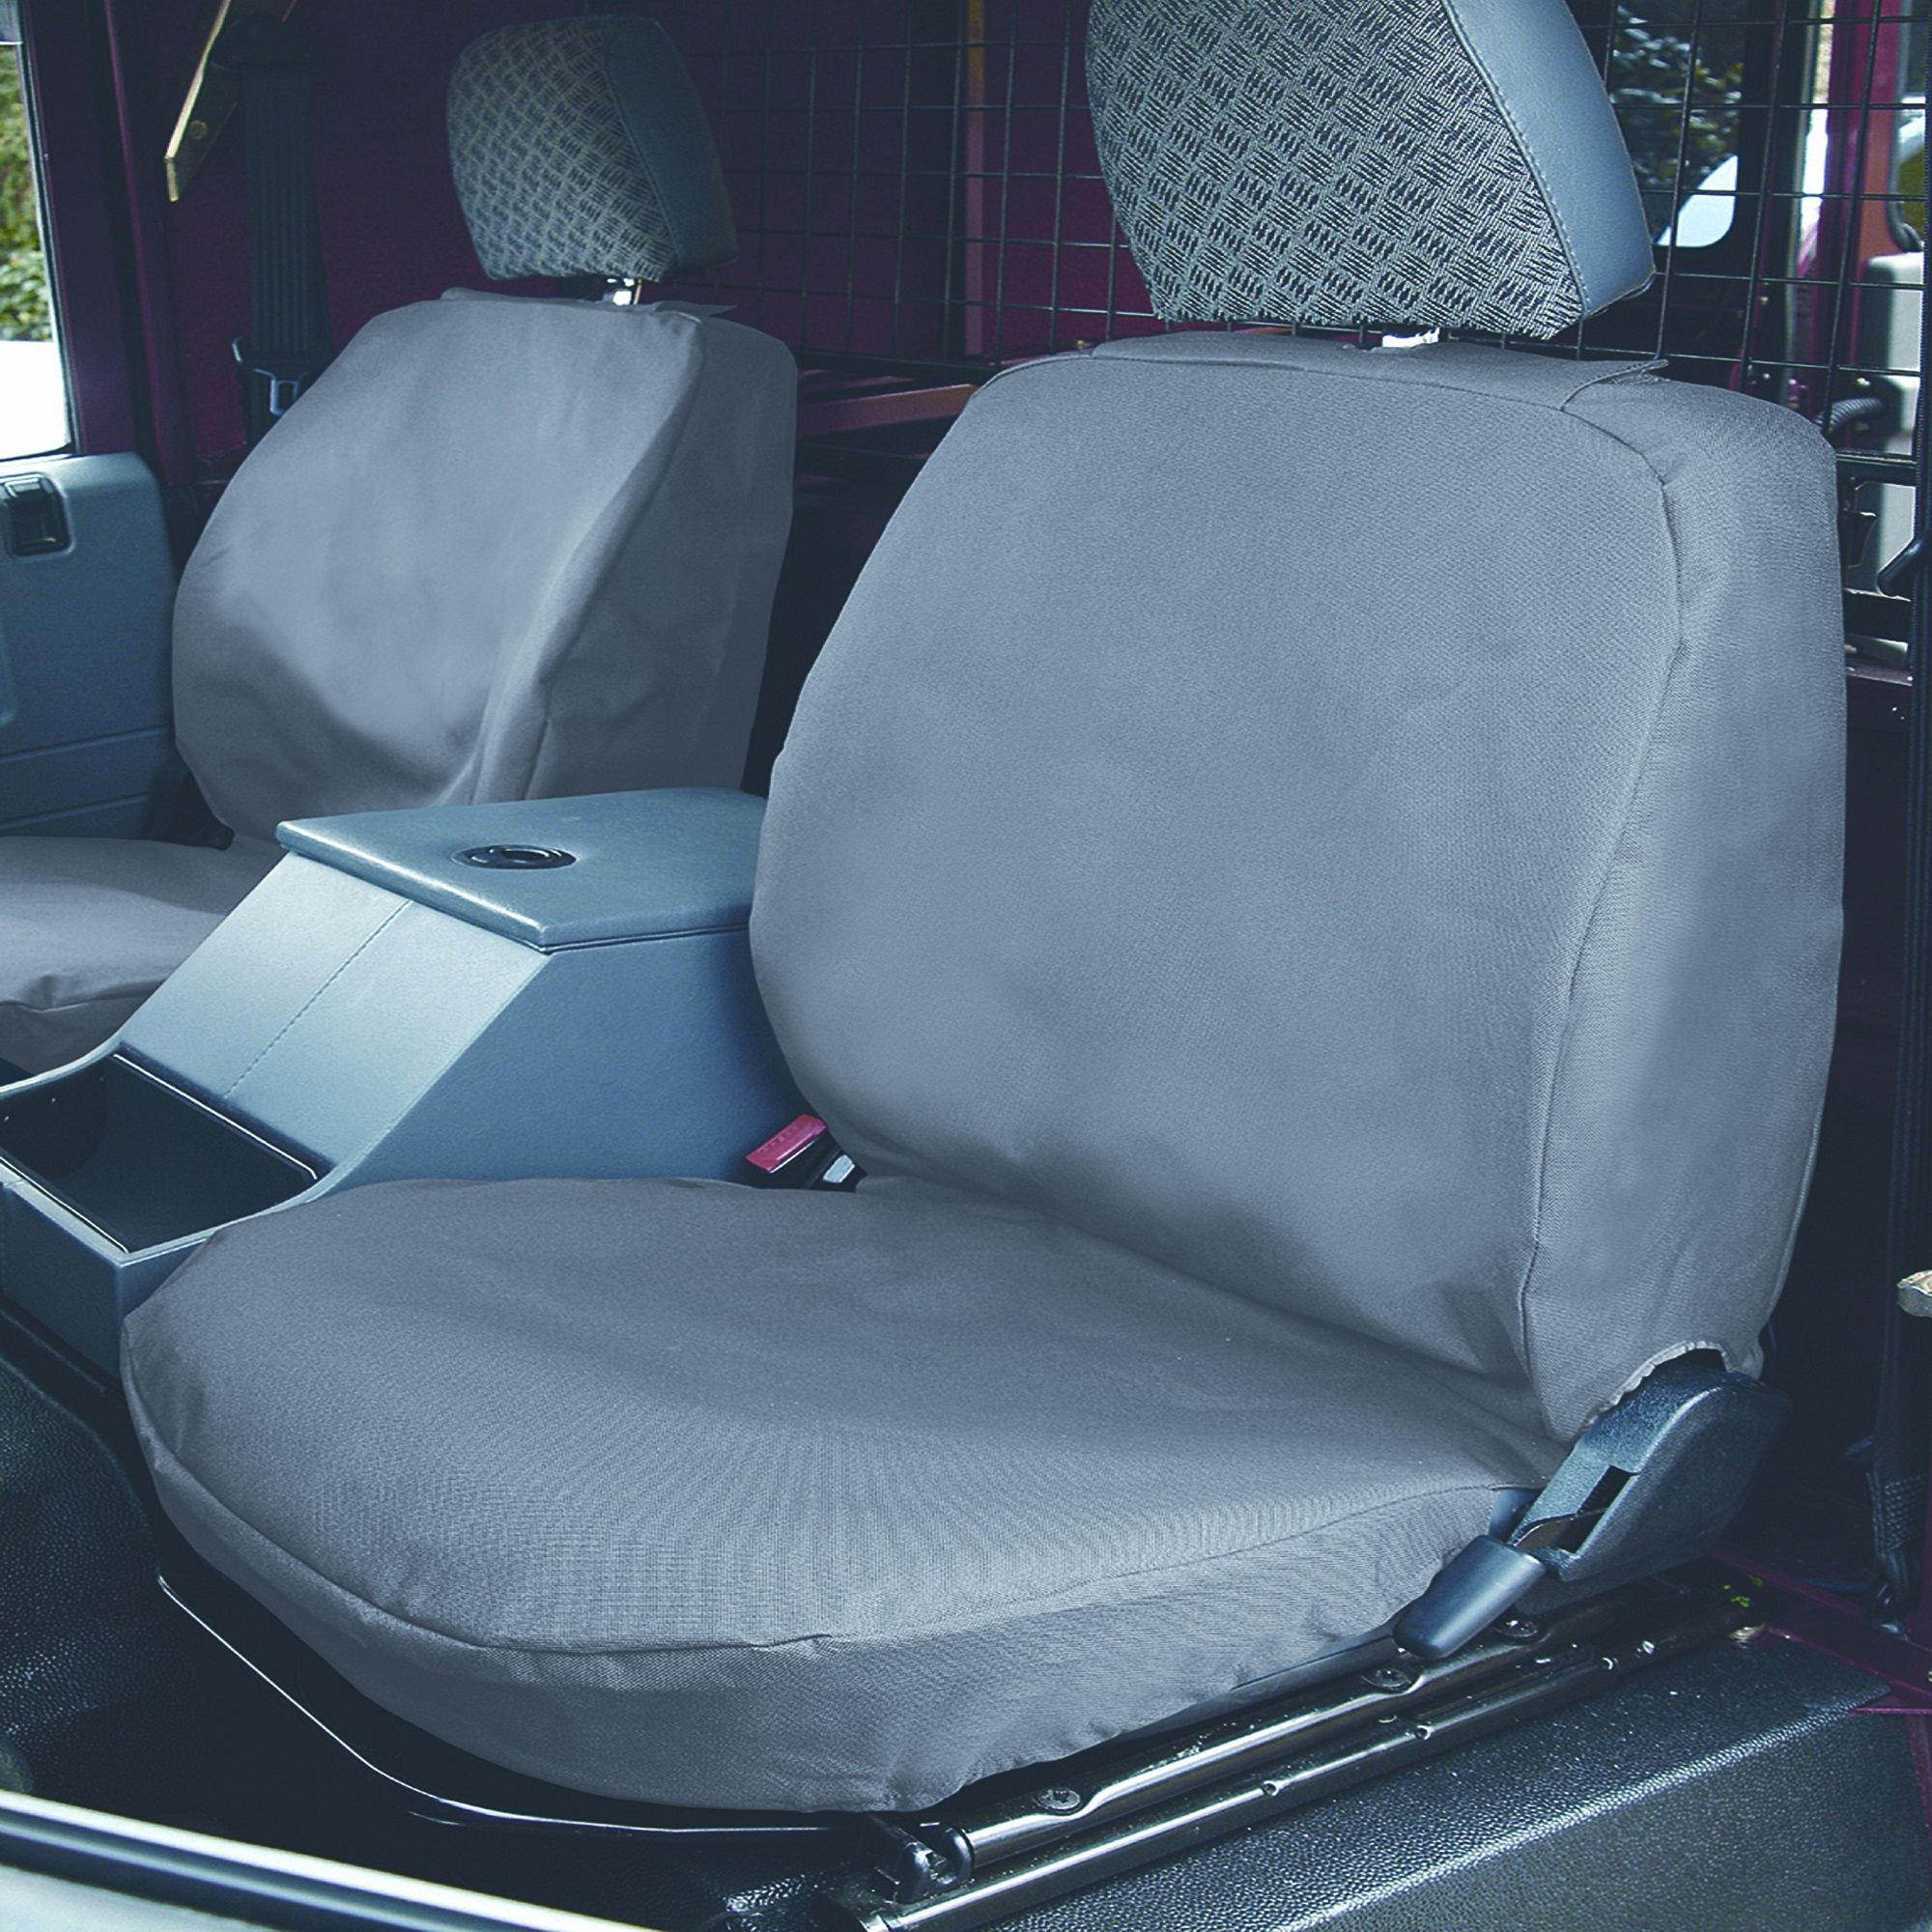 Land Rover Defender 4x4 Seat Covers at Care4car.com